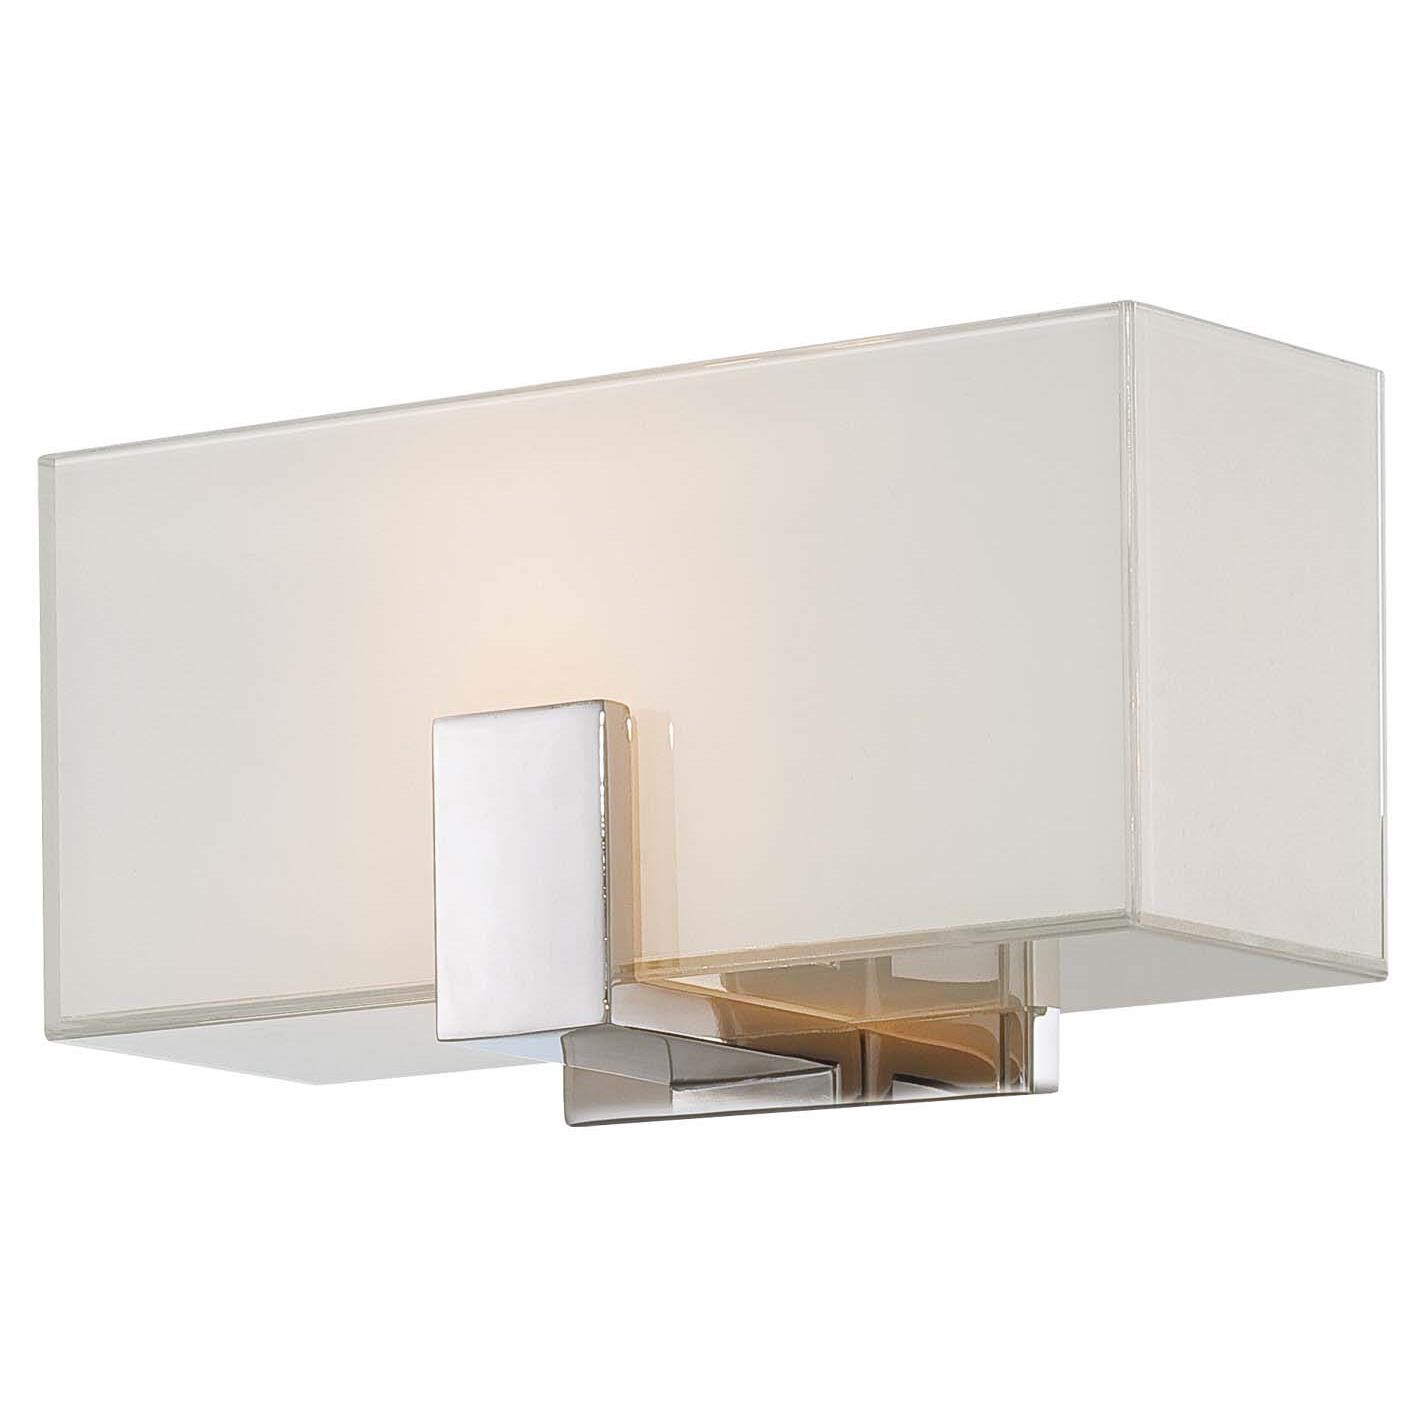 Kovacs 10 Inch Wall Sconce - P5220-613 - Modern Contemporary